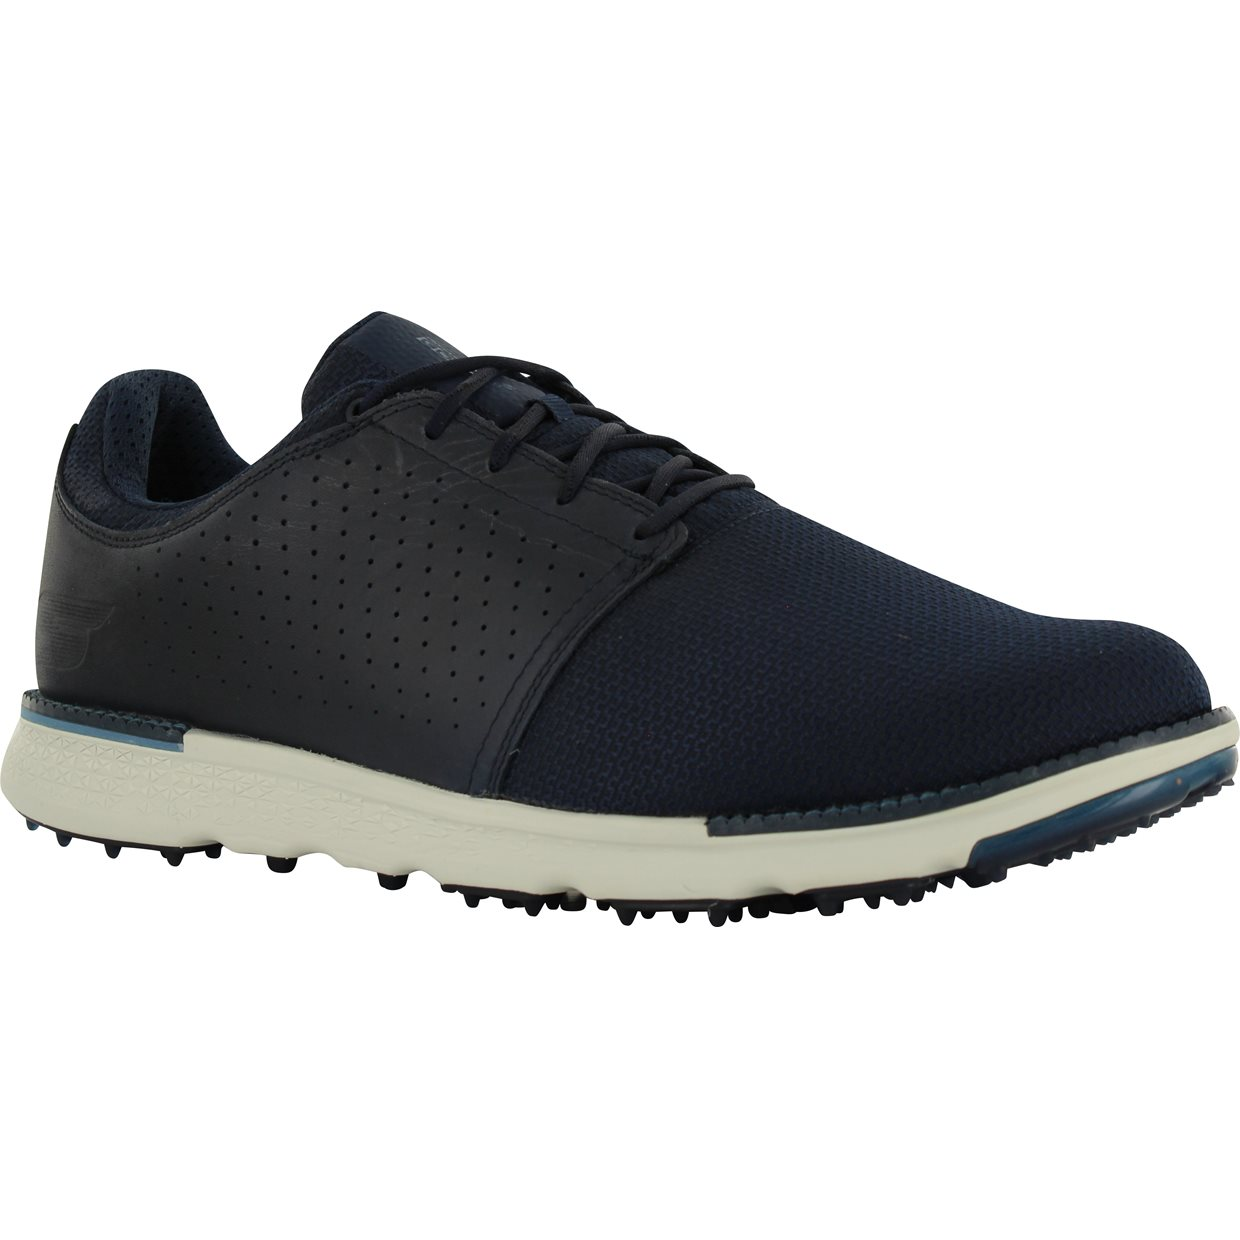 c2d79e6a0a59 Skechers Go Golf Elite V.3 Approach – RF Spikeless Shoes. Drag 360 Left or  Right to View. Alternate Product Image View 1 ...